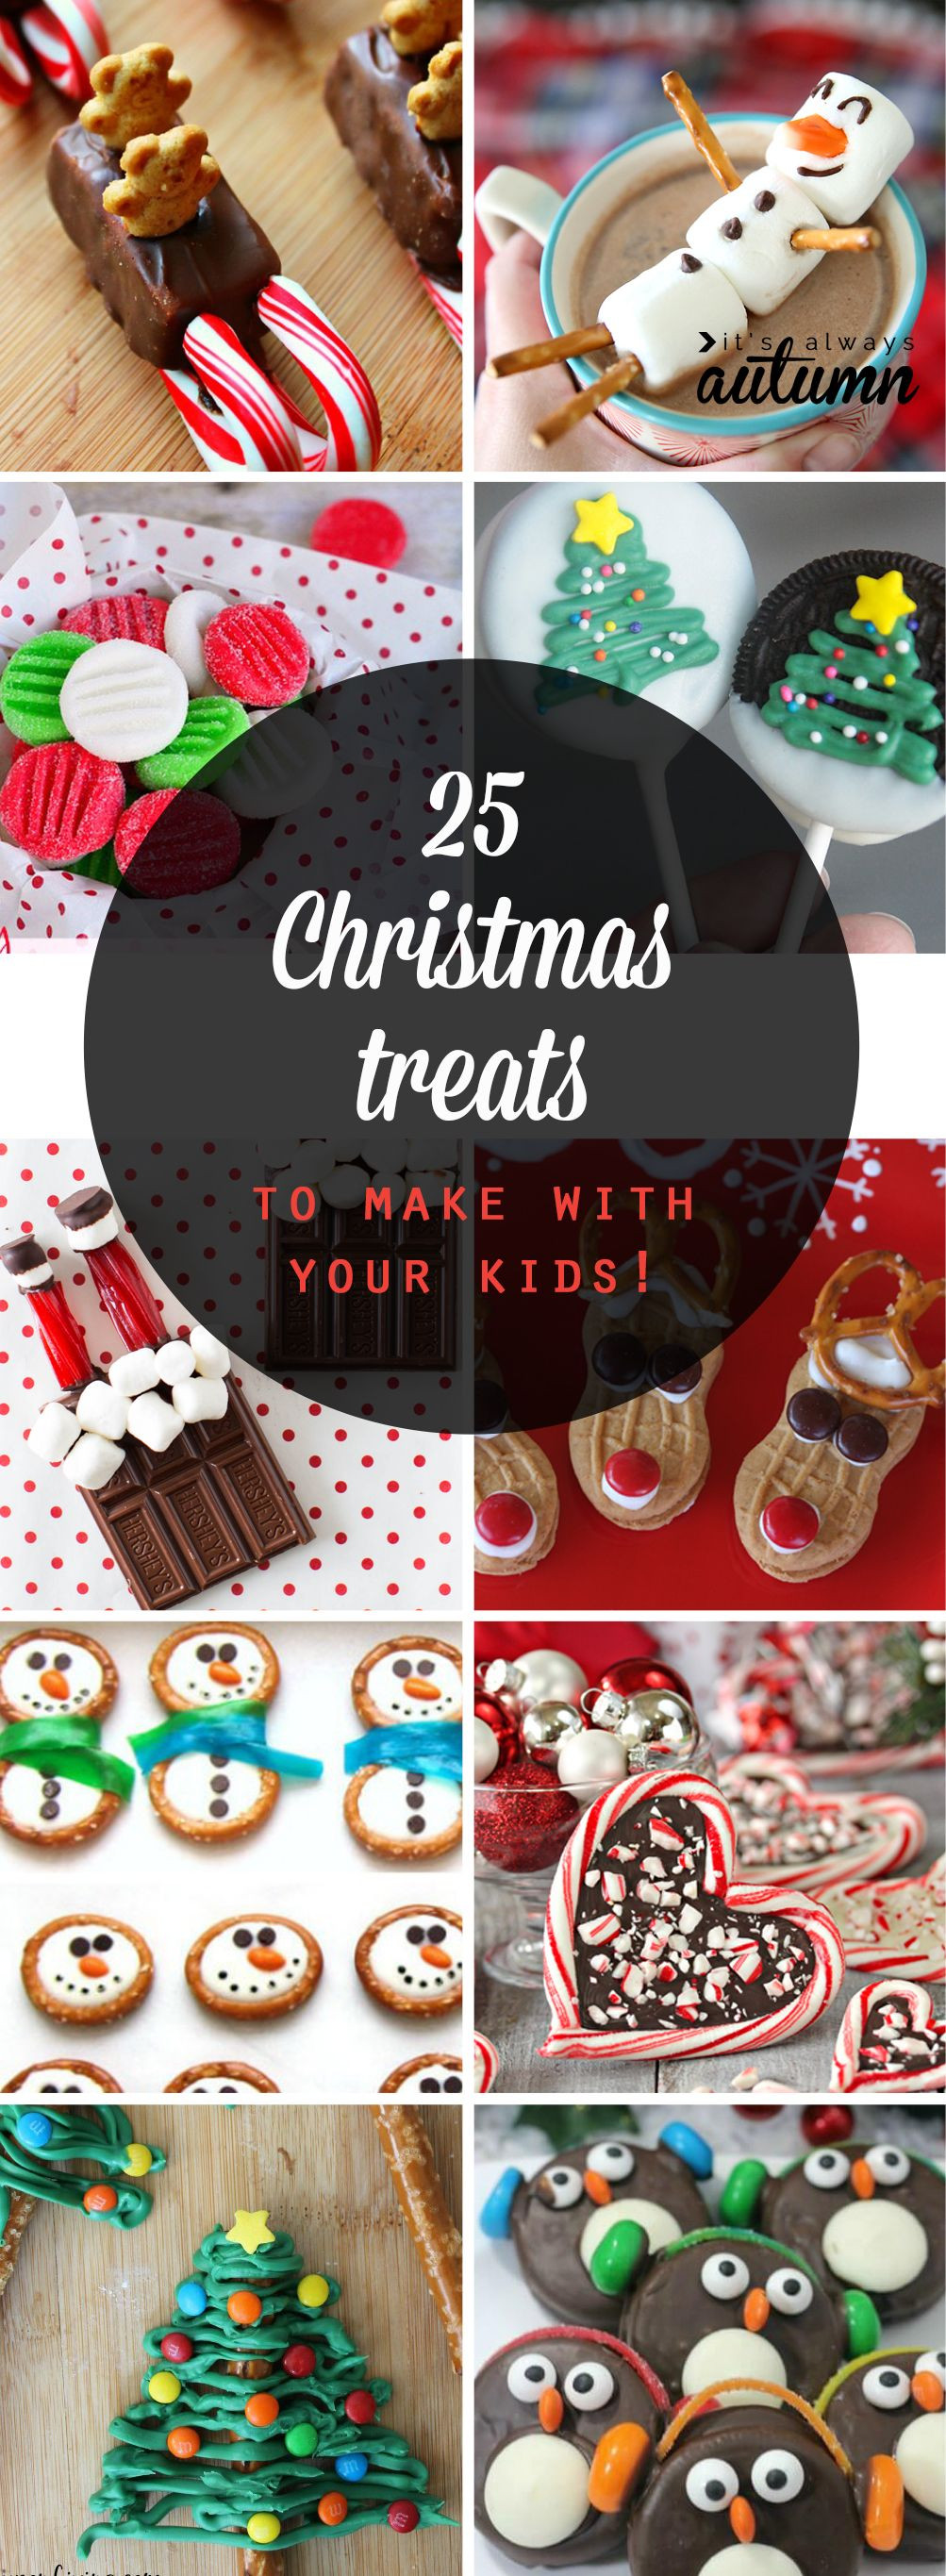 Easy Christmas Cookies To Make With Kids  25 adorable Christmas treats to make with your kids